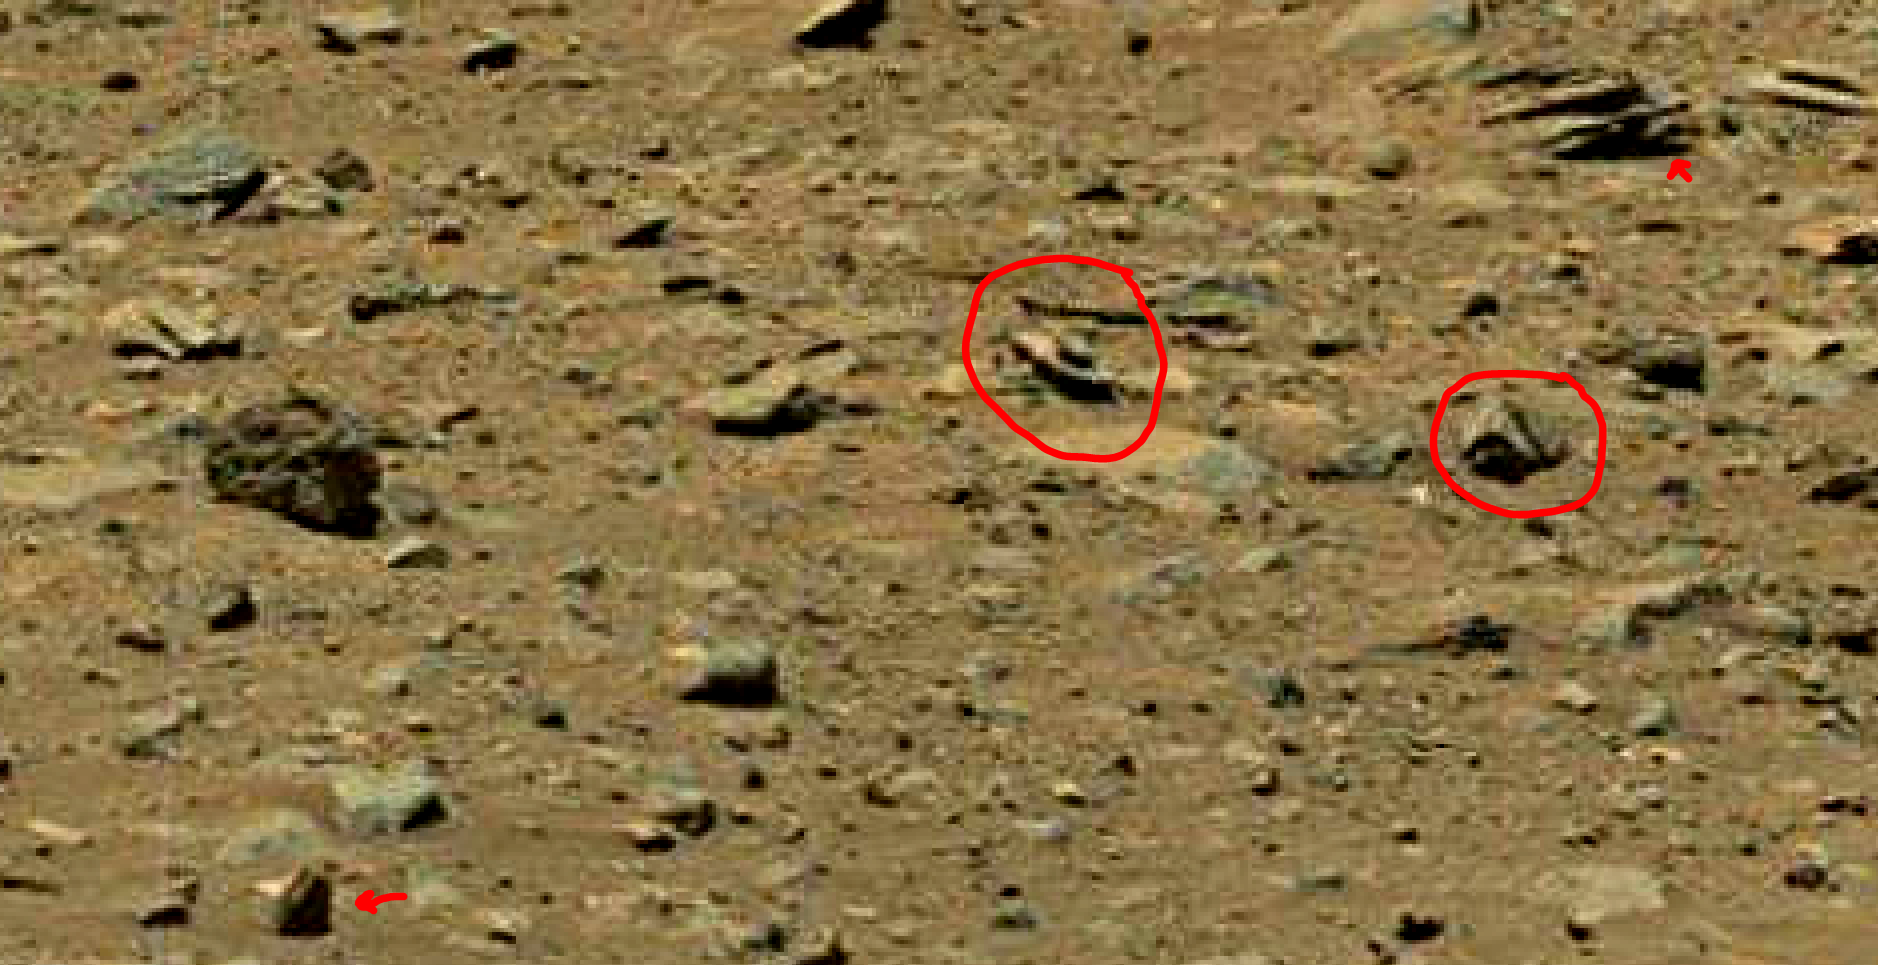 mars sol 1402 anomaly artifacts 2 was life on mars